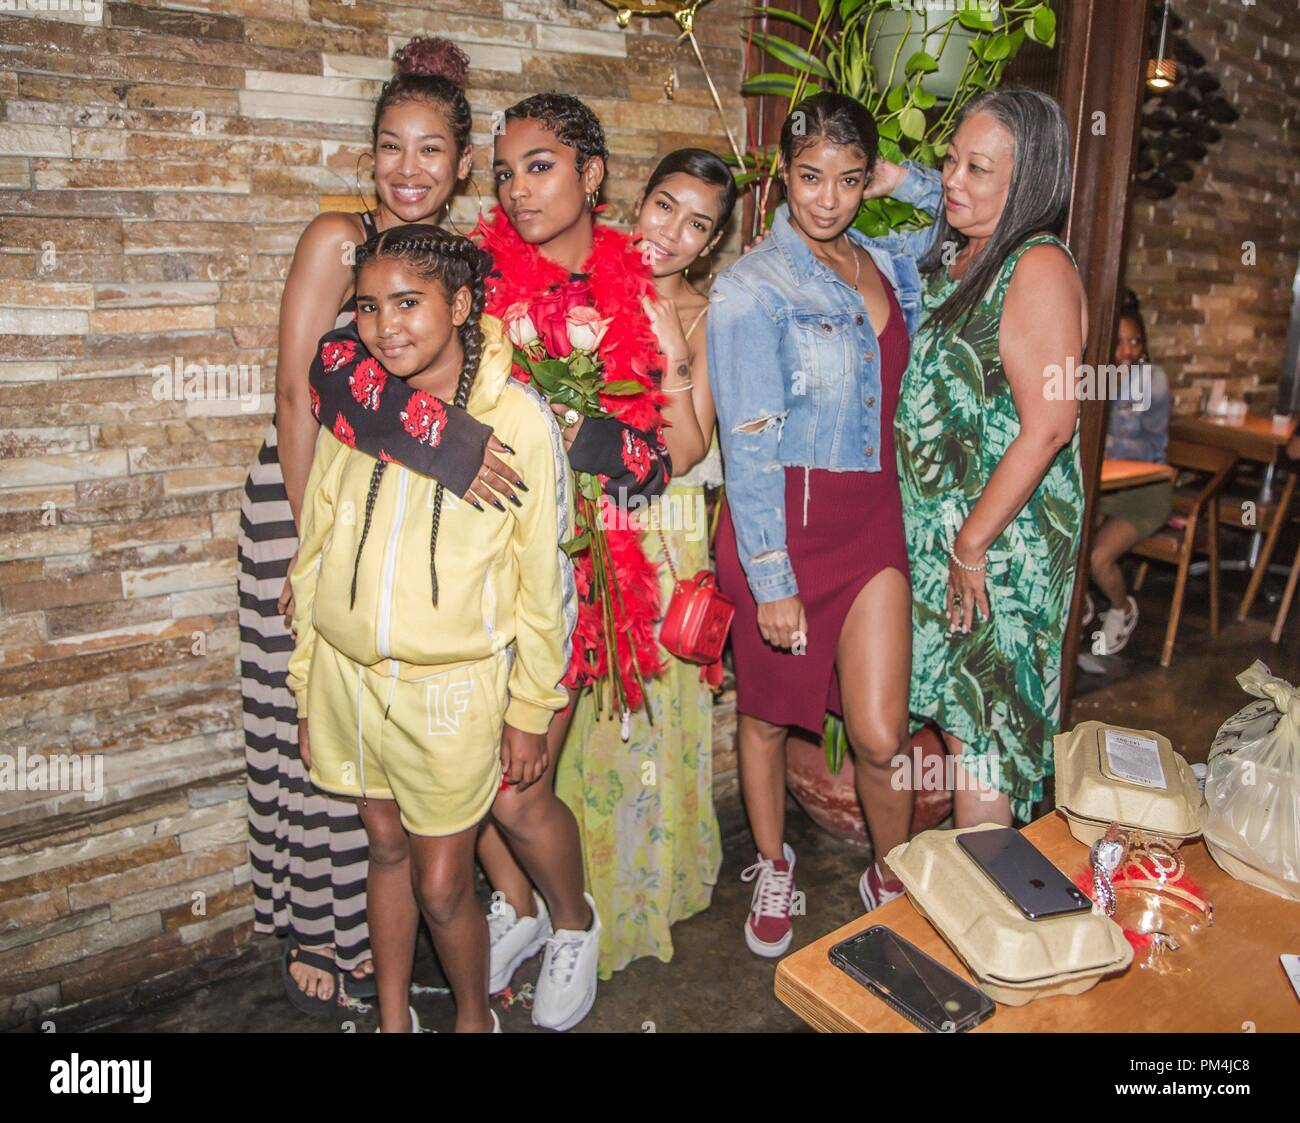 Singers Jhené Aiko And Mila J Celebrate Their Younger